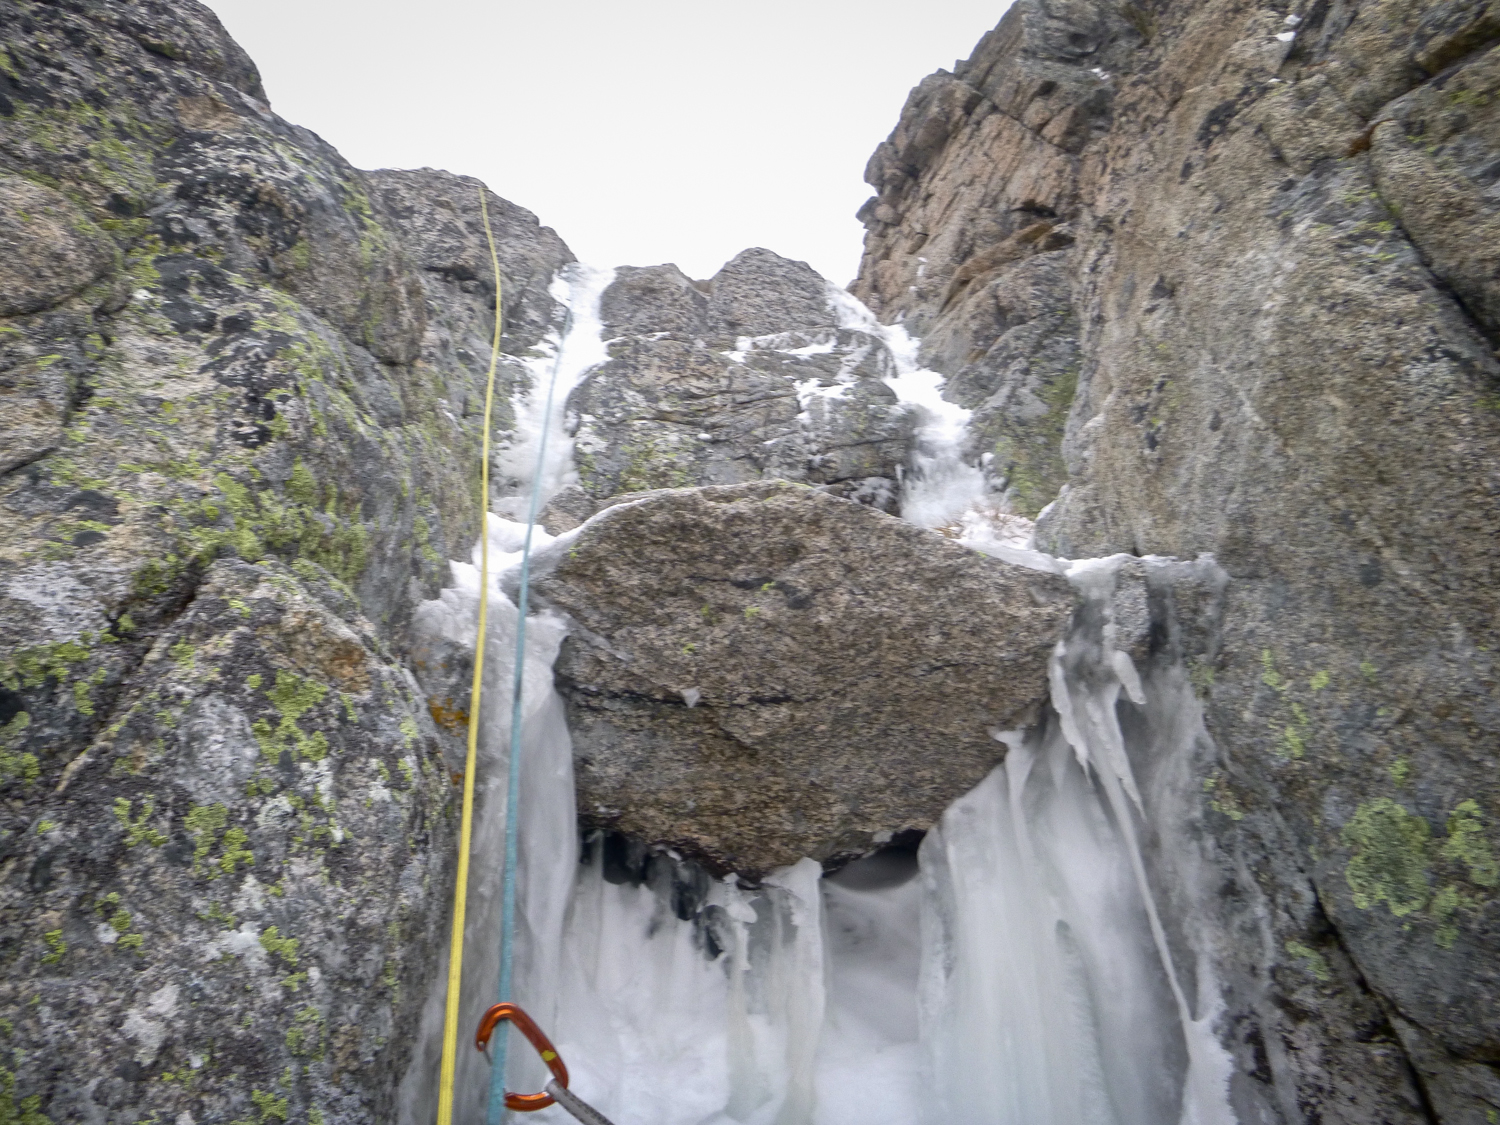 Part way up the icy corners on the first pitch of Stalker.